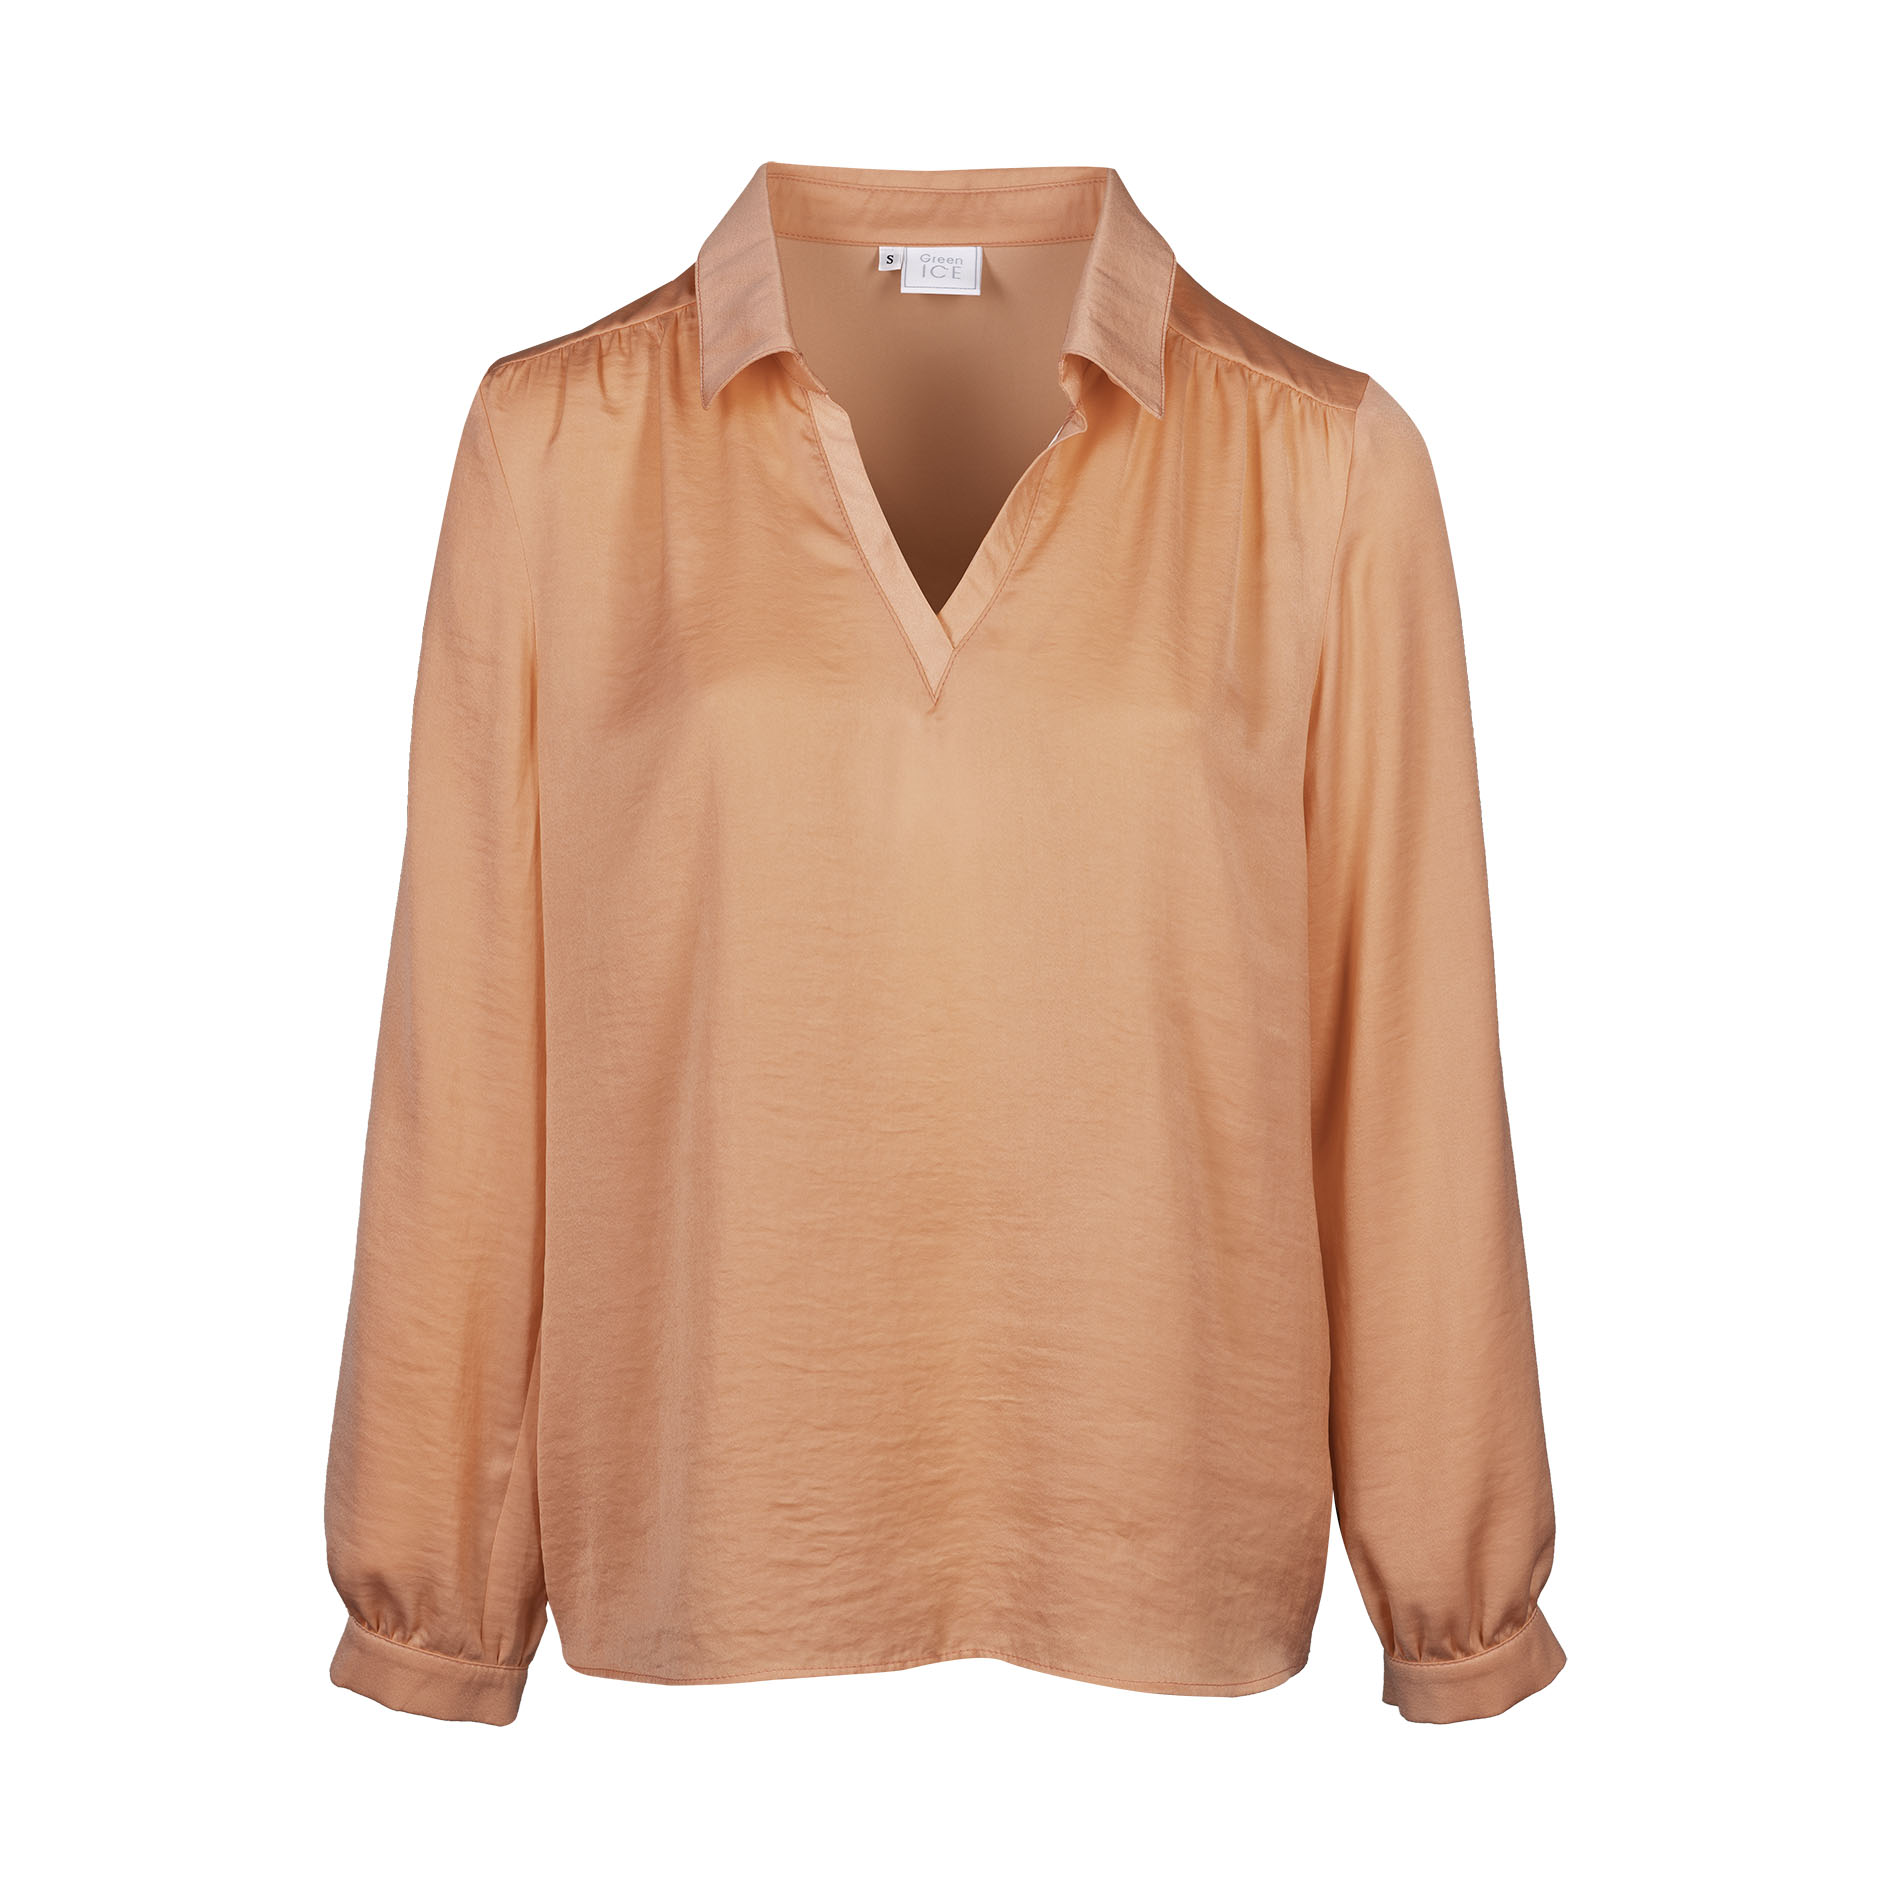 Blouse 'Diana' Peach